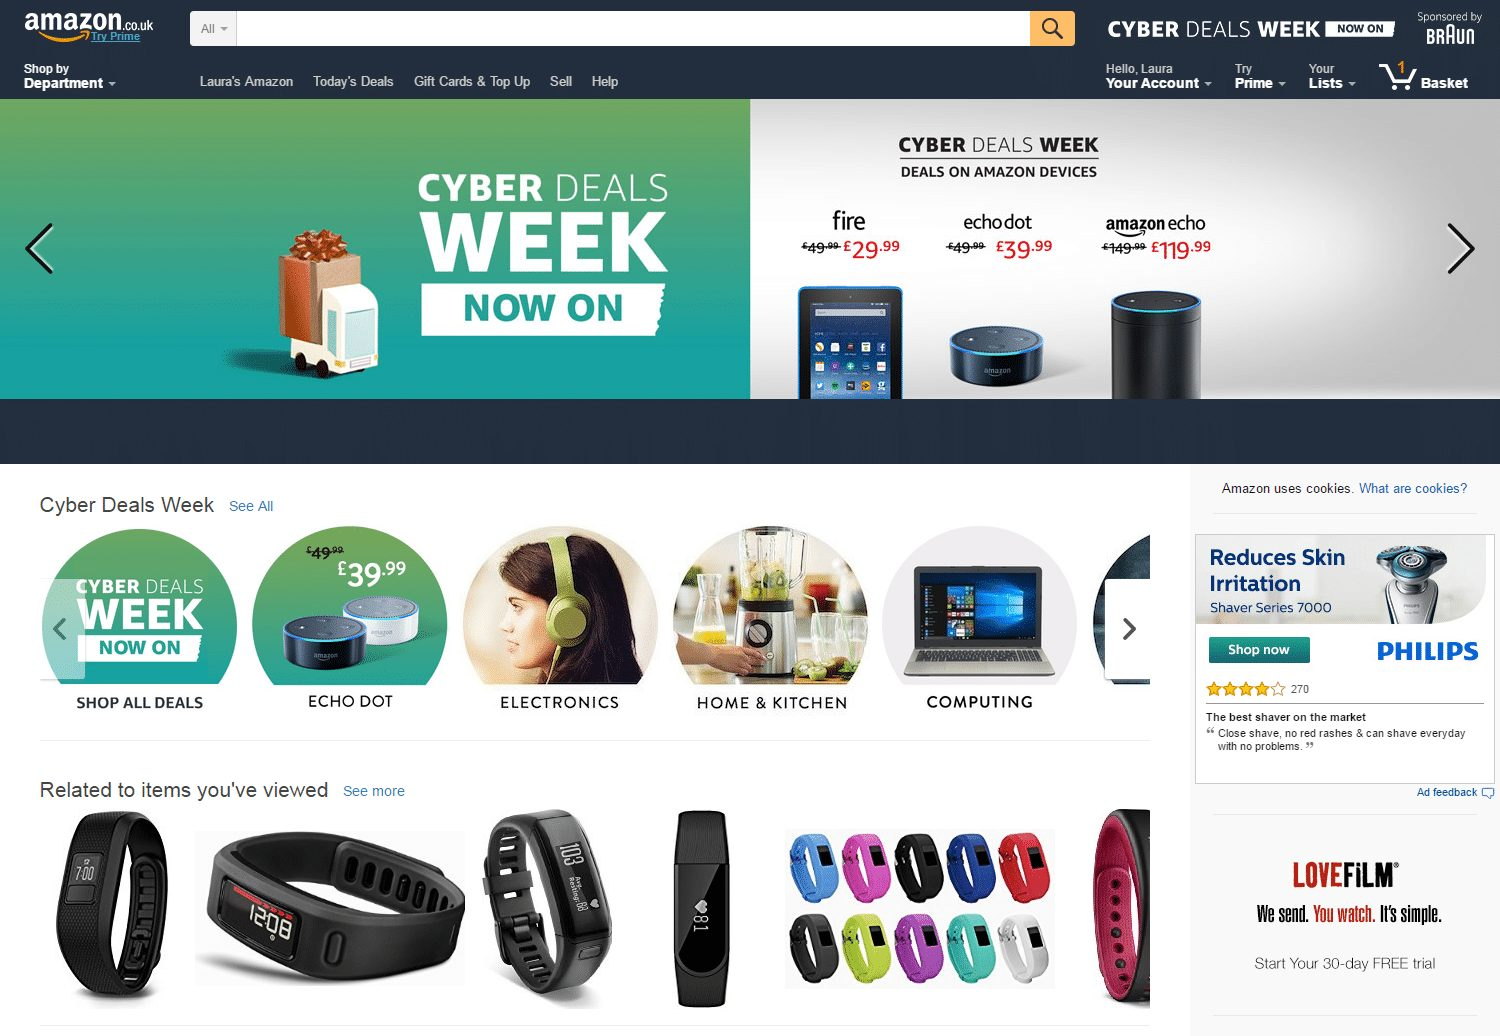 Website personalisation tactics include product recommendations